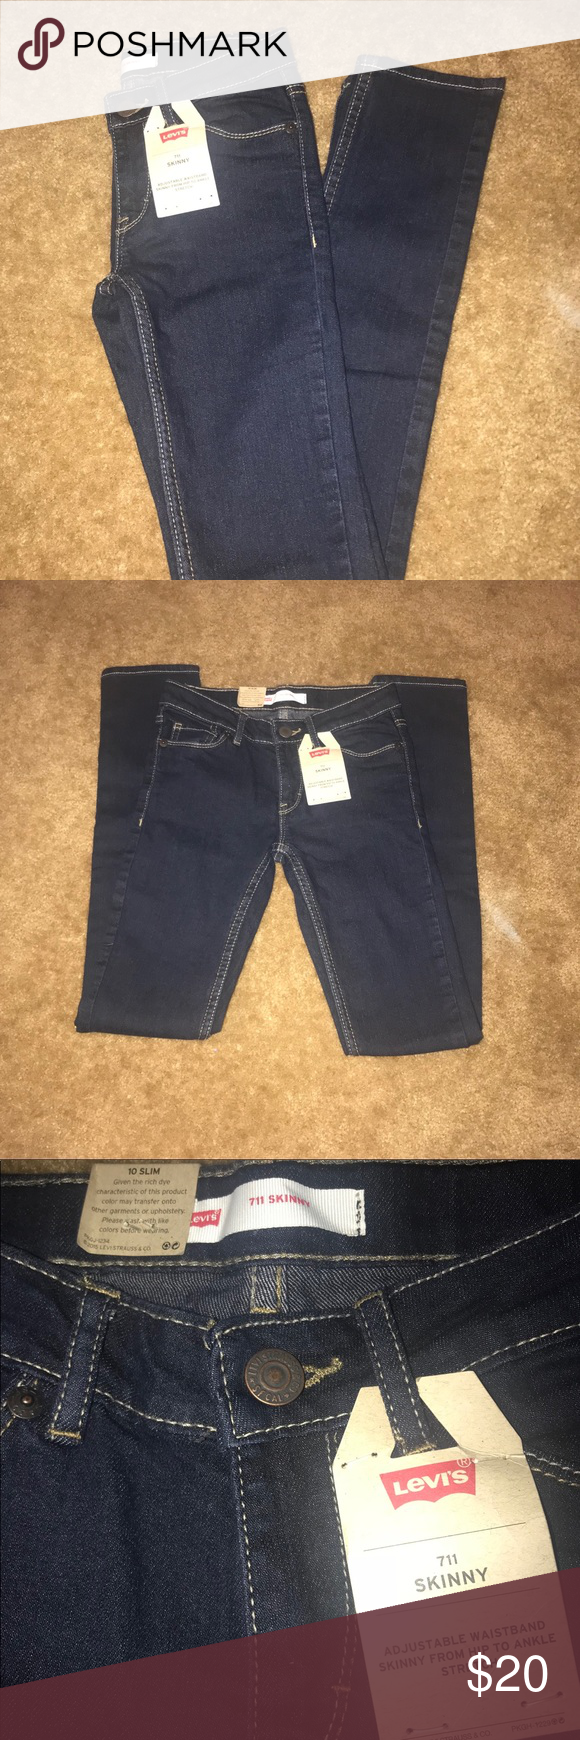 3b90734684a Children's Levi Skinny Jeans Brand new girls slim fit skinny jeans, with  adjustable waist band Levi's Bottoms Jeans